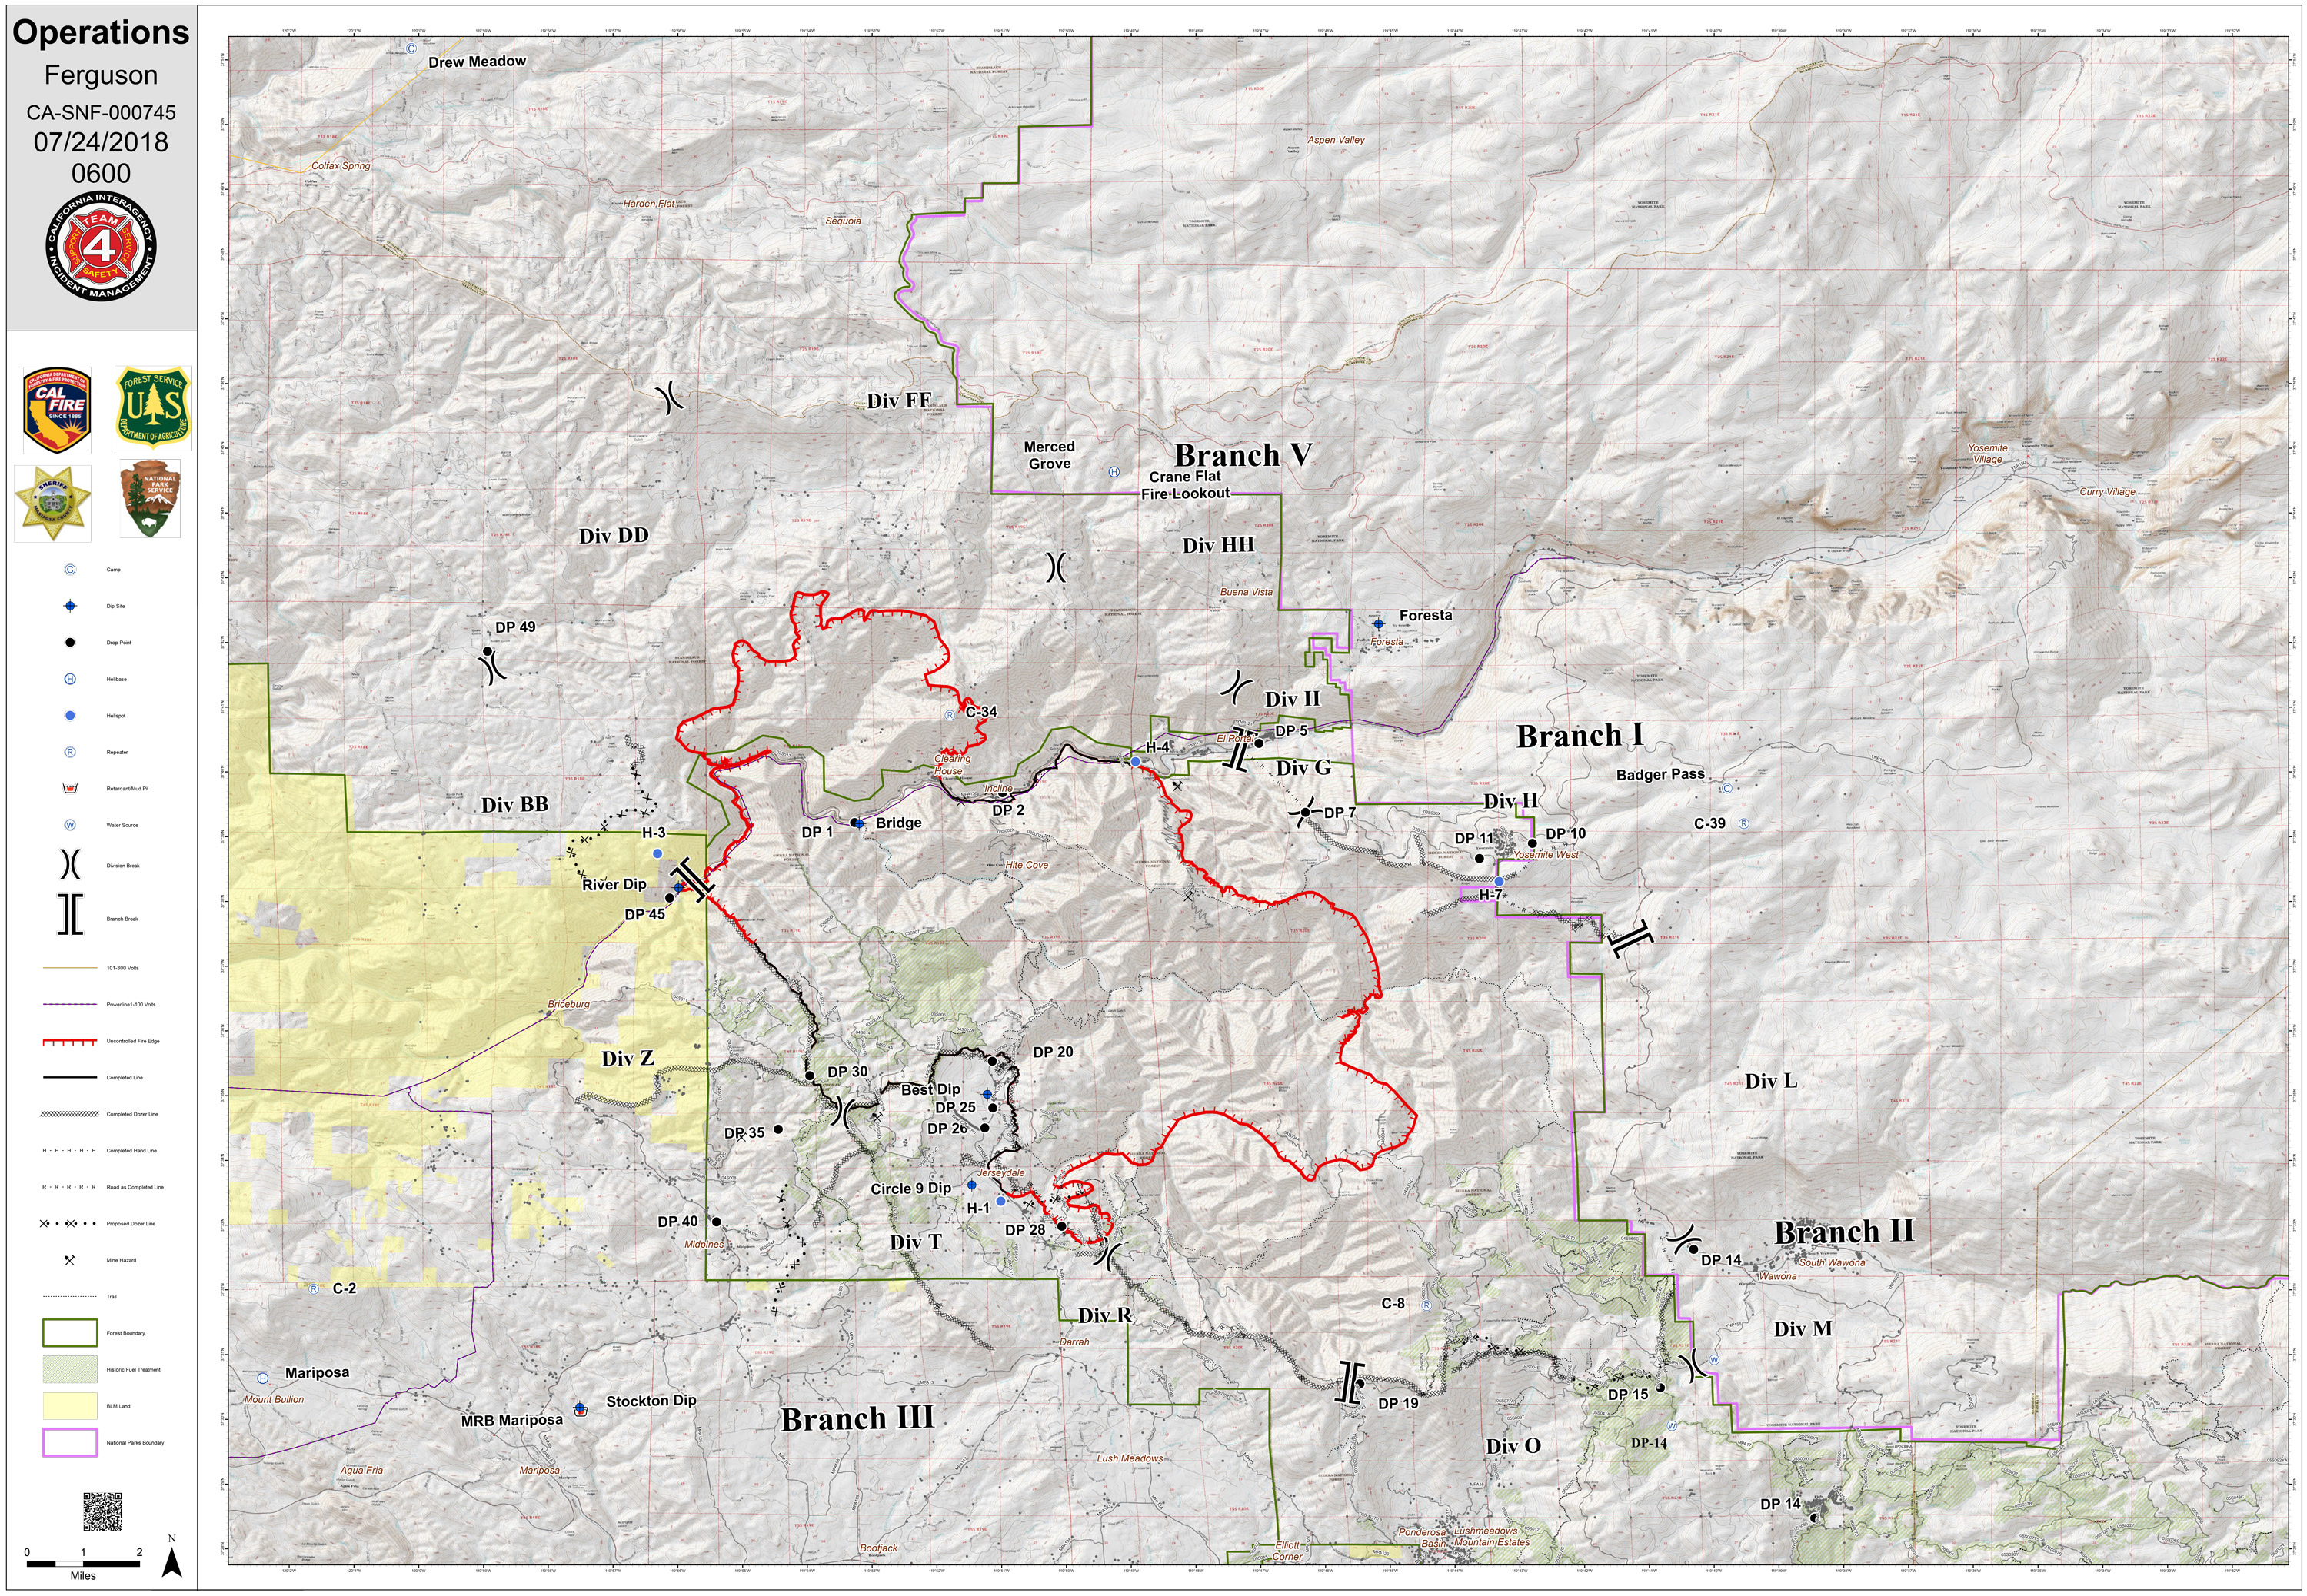 County Line 2 Fire Map.Ferguson Fire Near Yosemite National Park In Mariposa County Tuesday